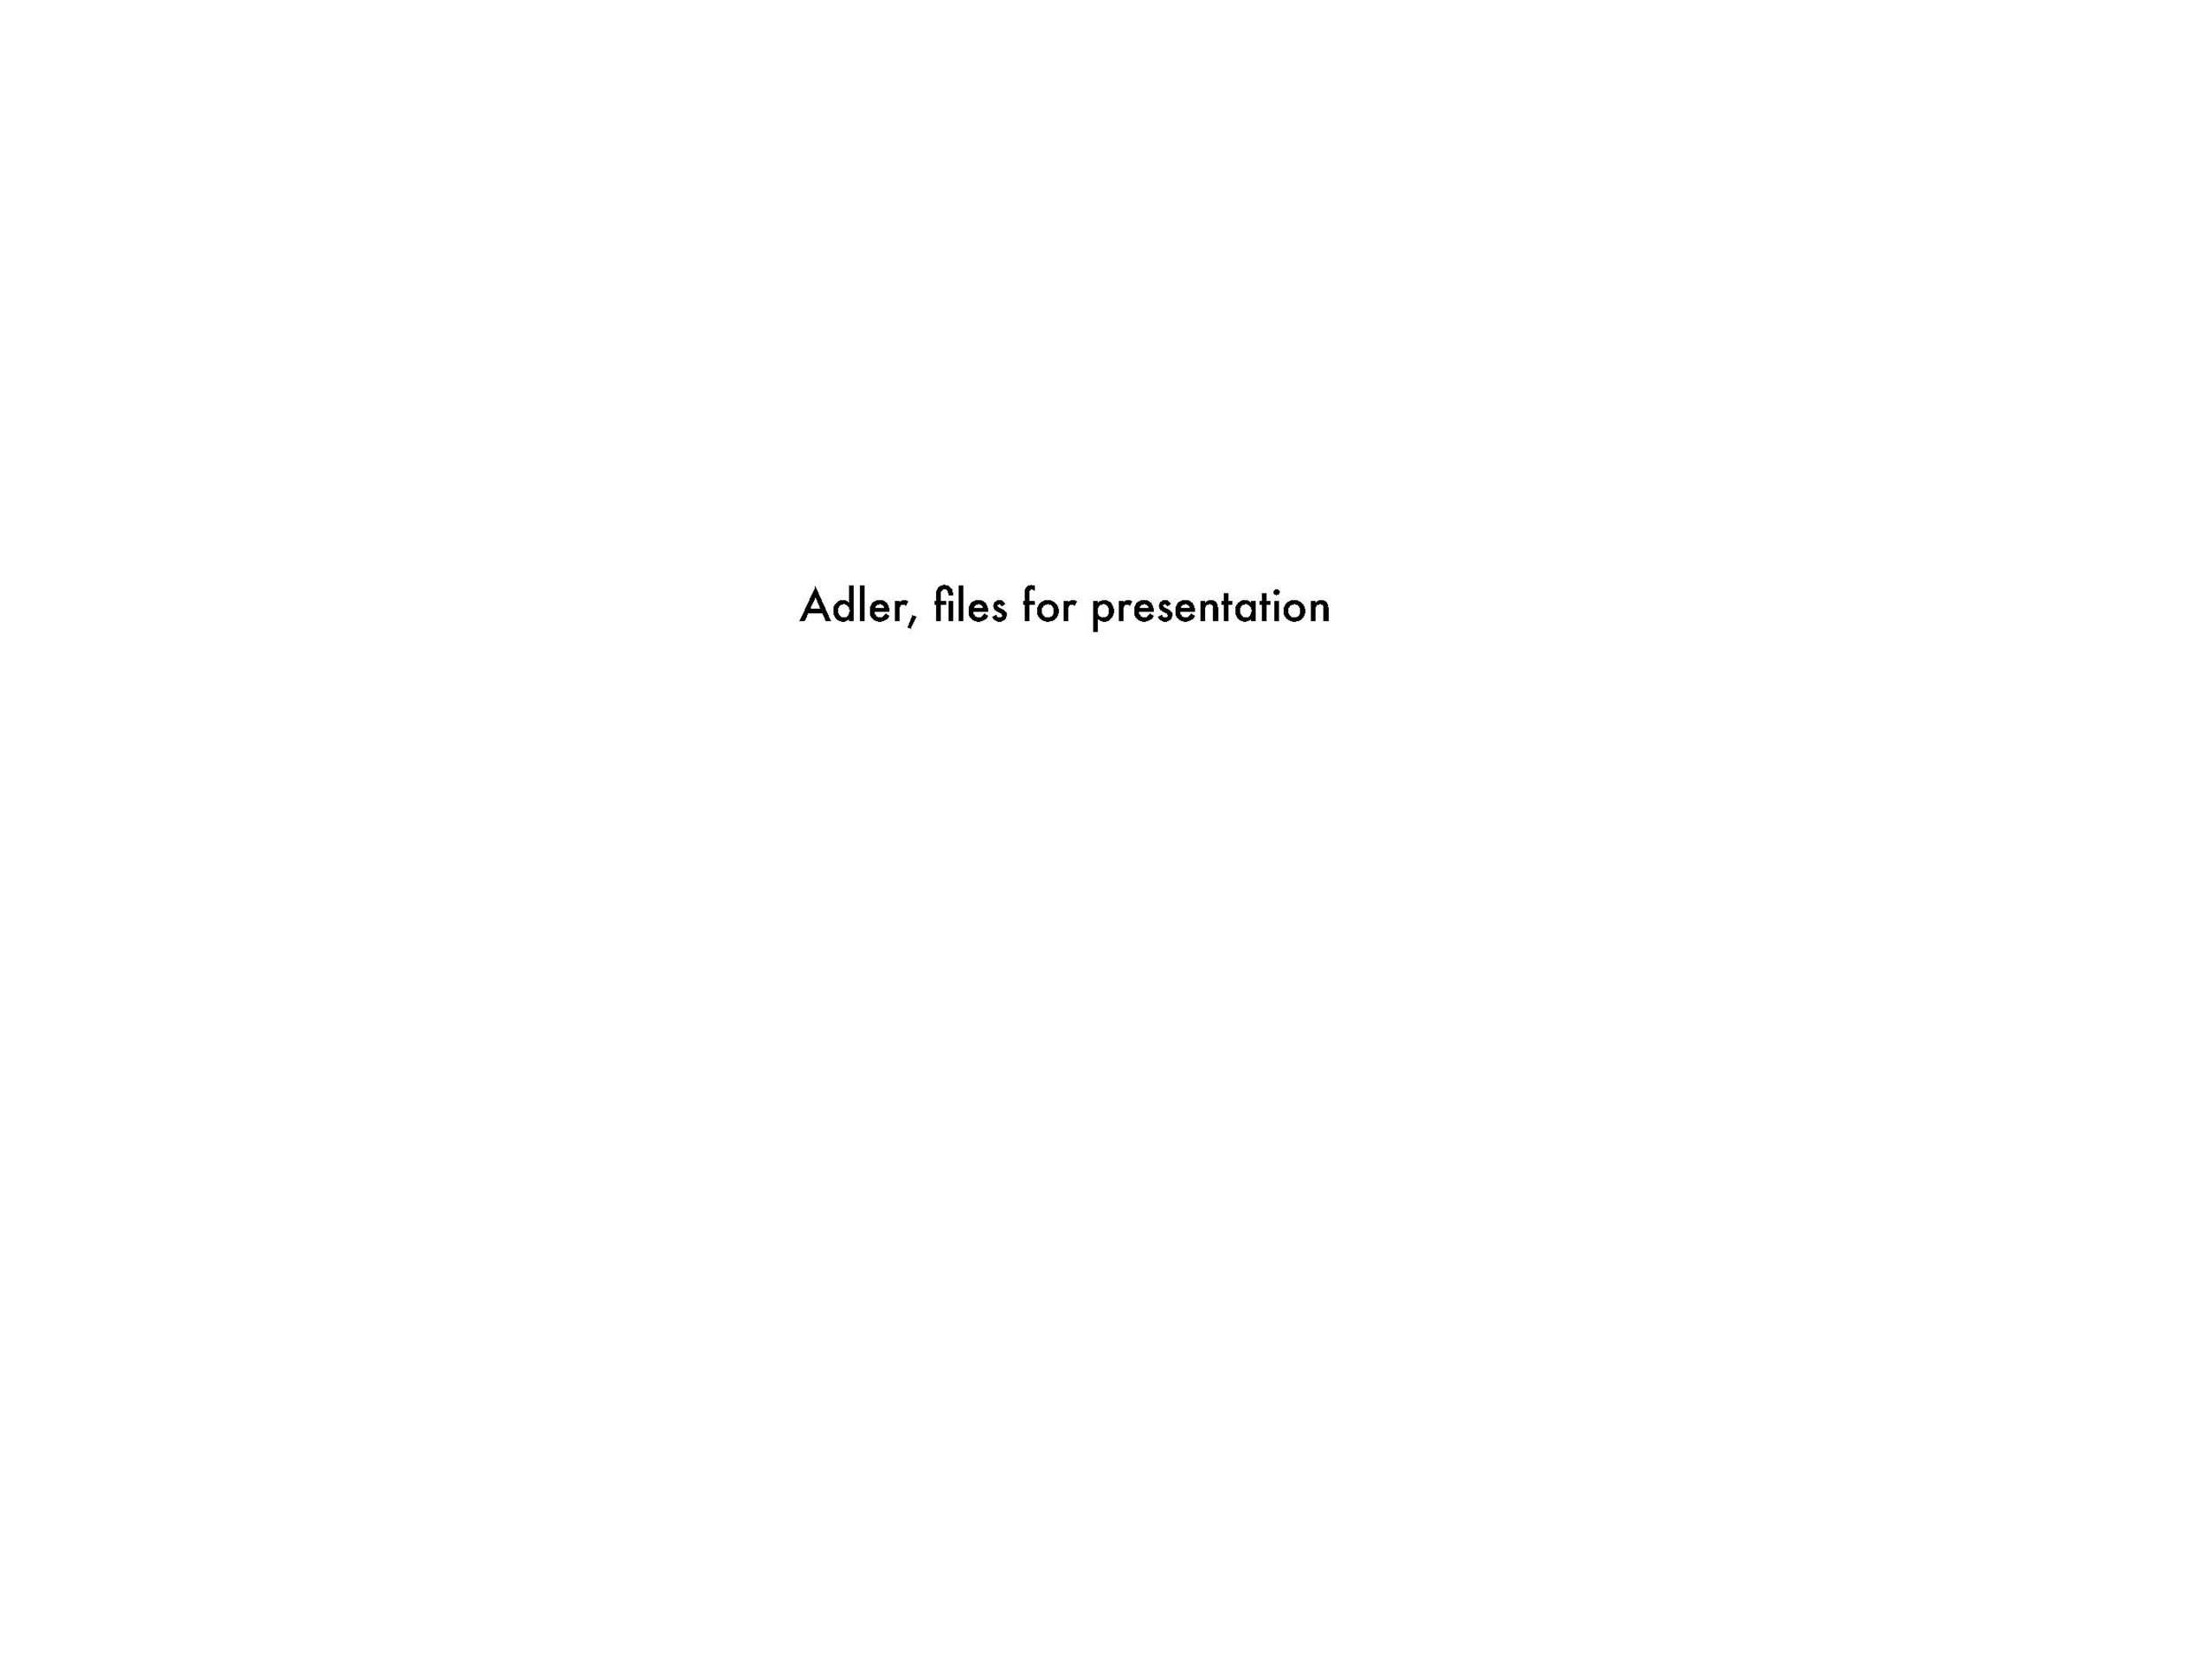 Adler, files for presentation_Page_1.jpg